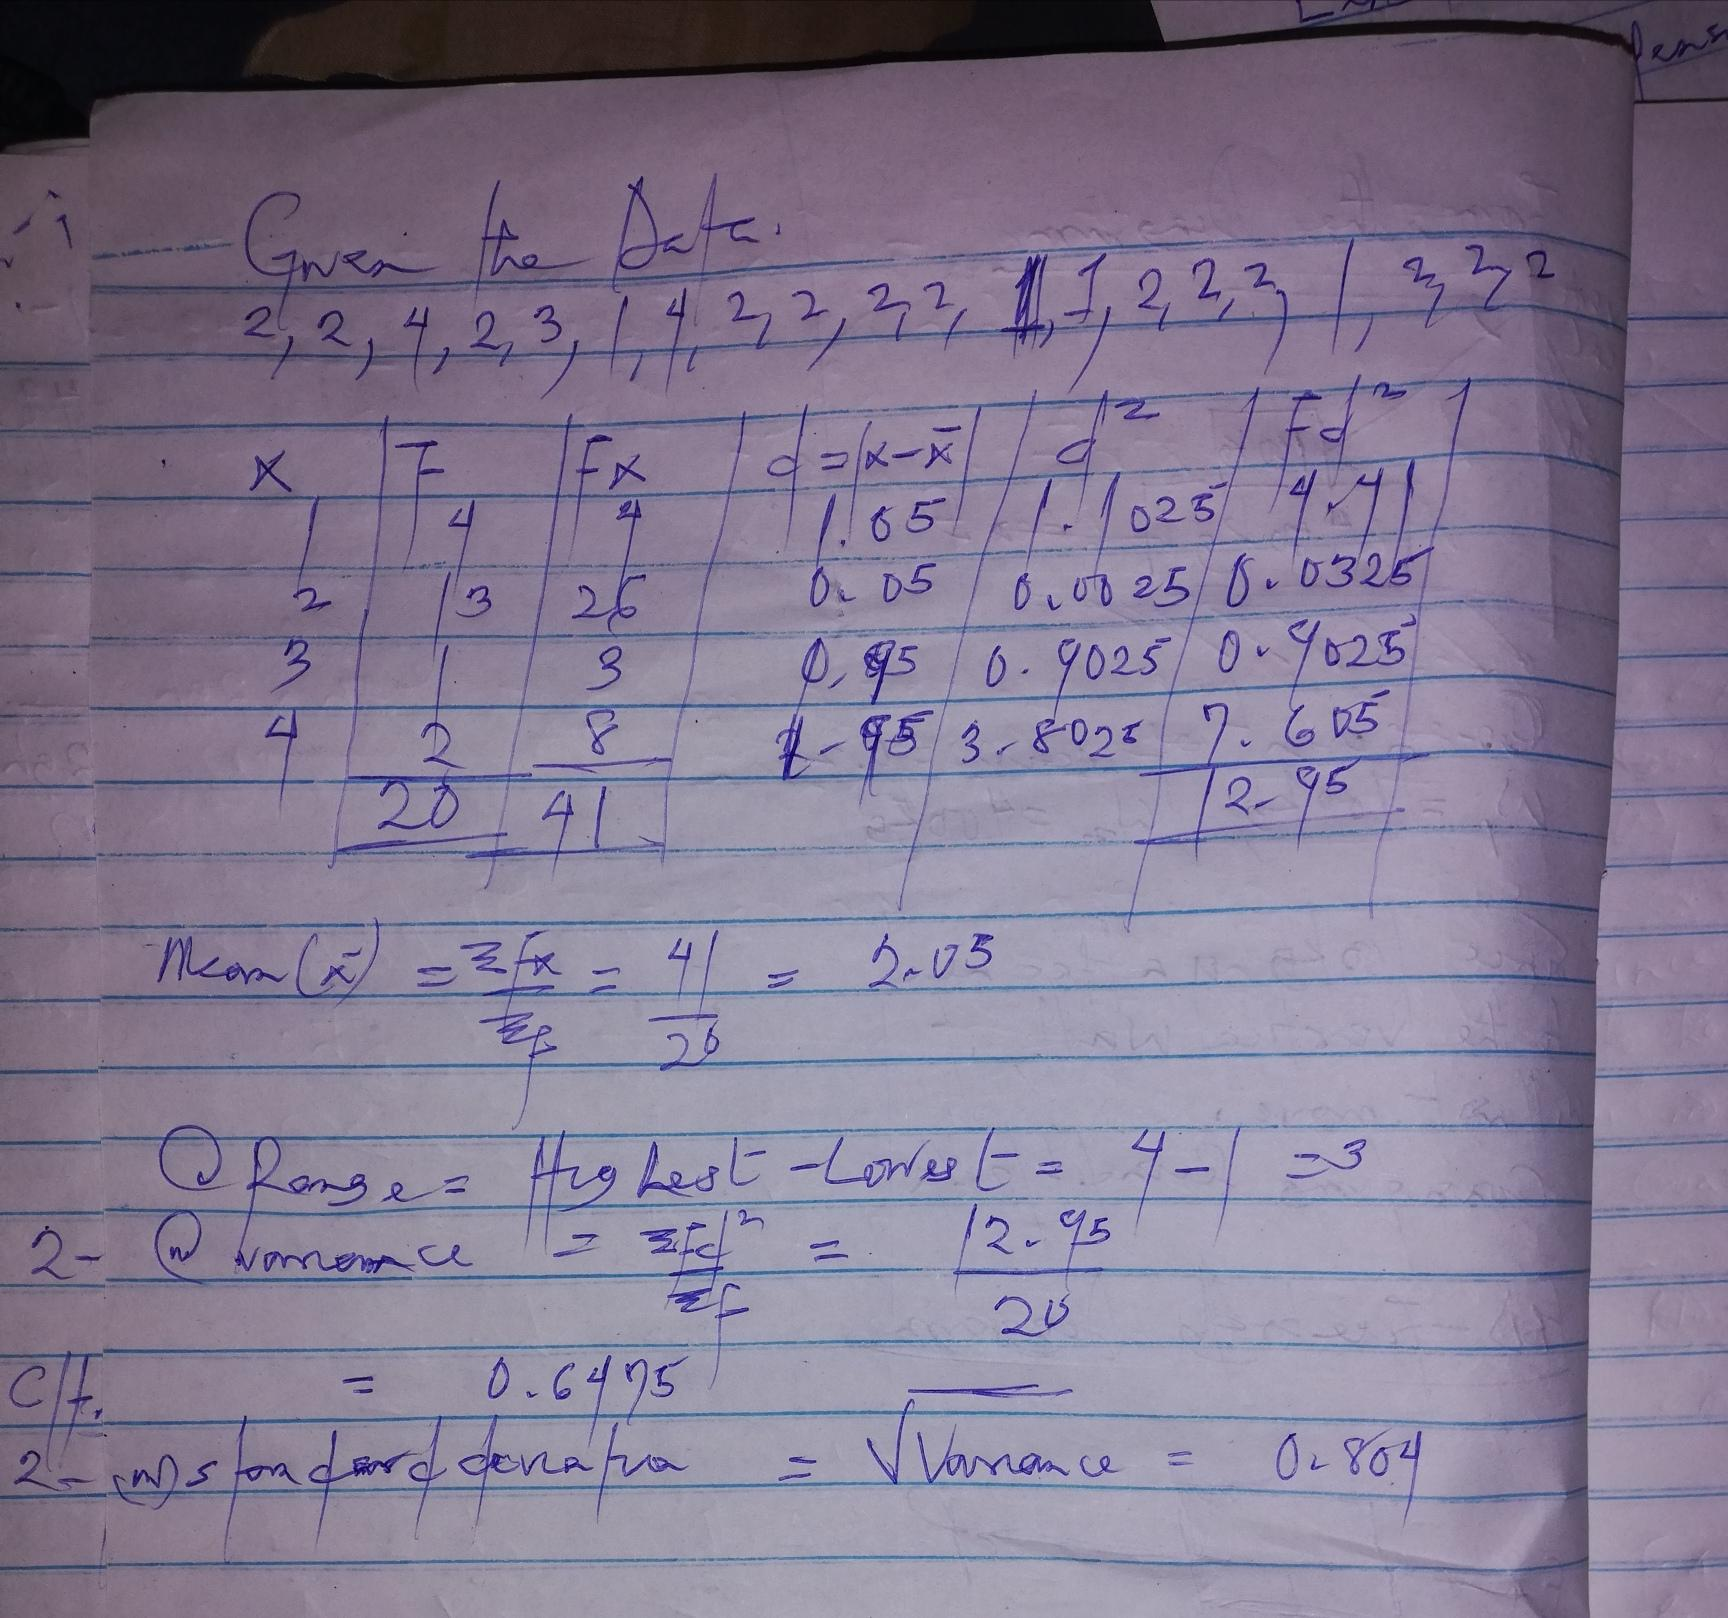 Find The Range Variance And Standard Deviation For The